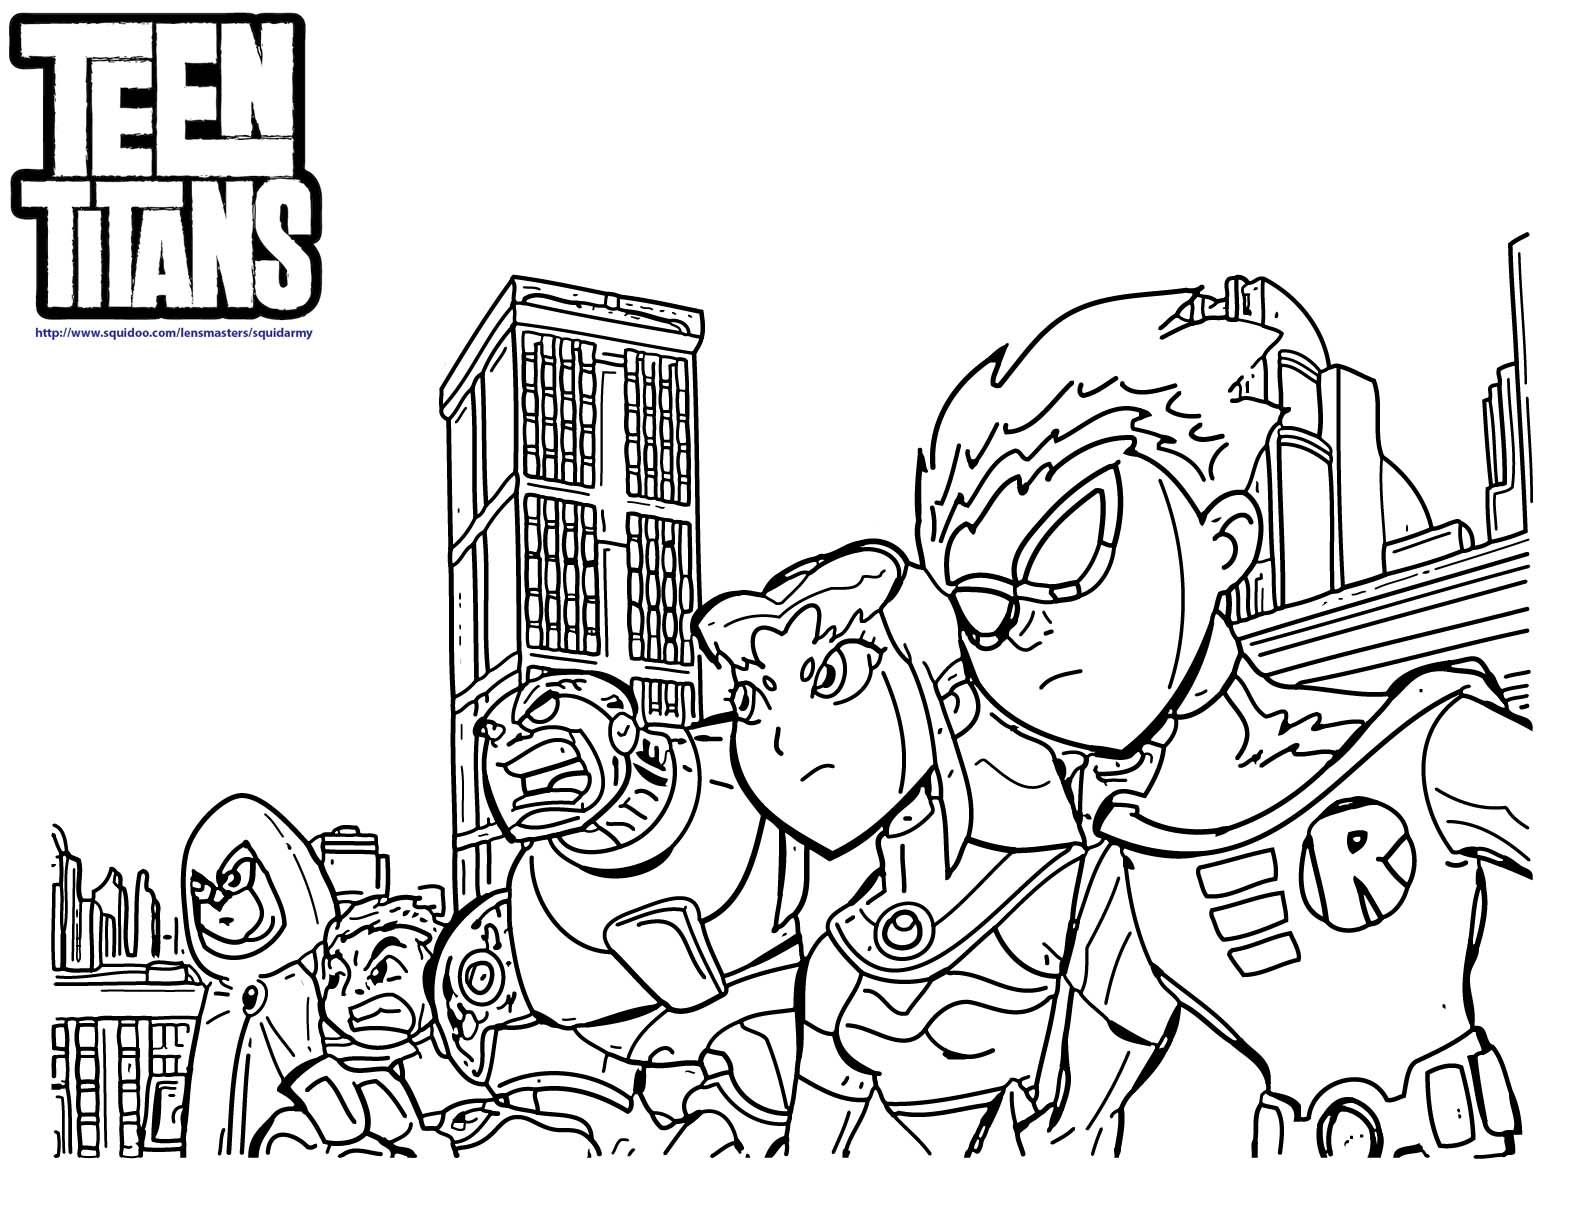 Teen Titans Coloring Page | Teen Titans | Pinterest | Teen titans ...